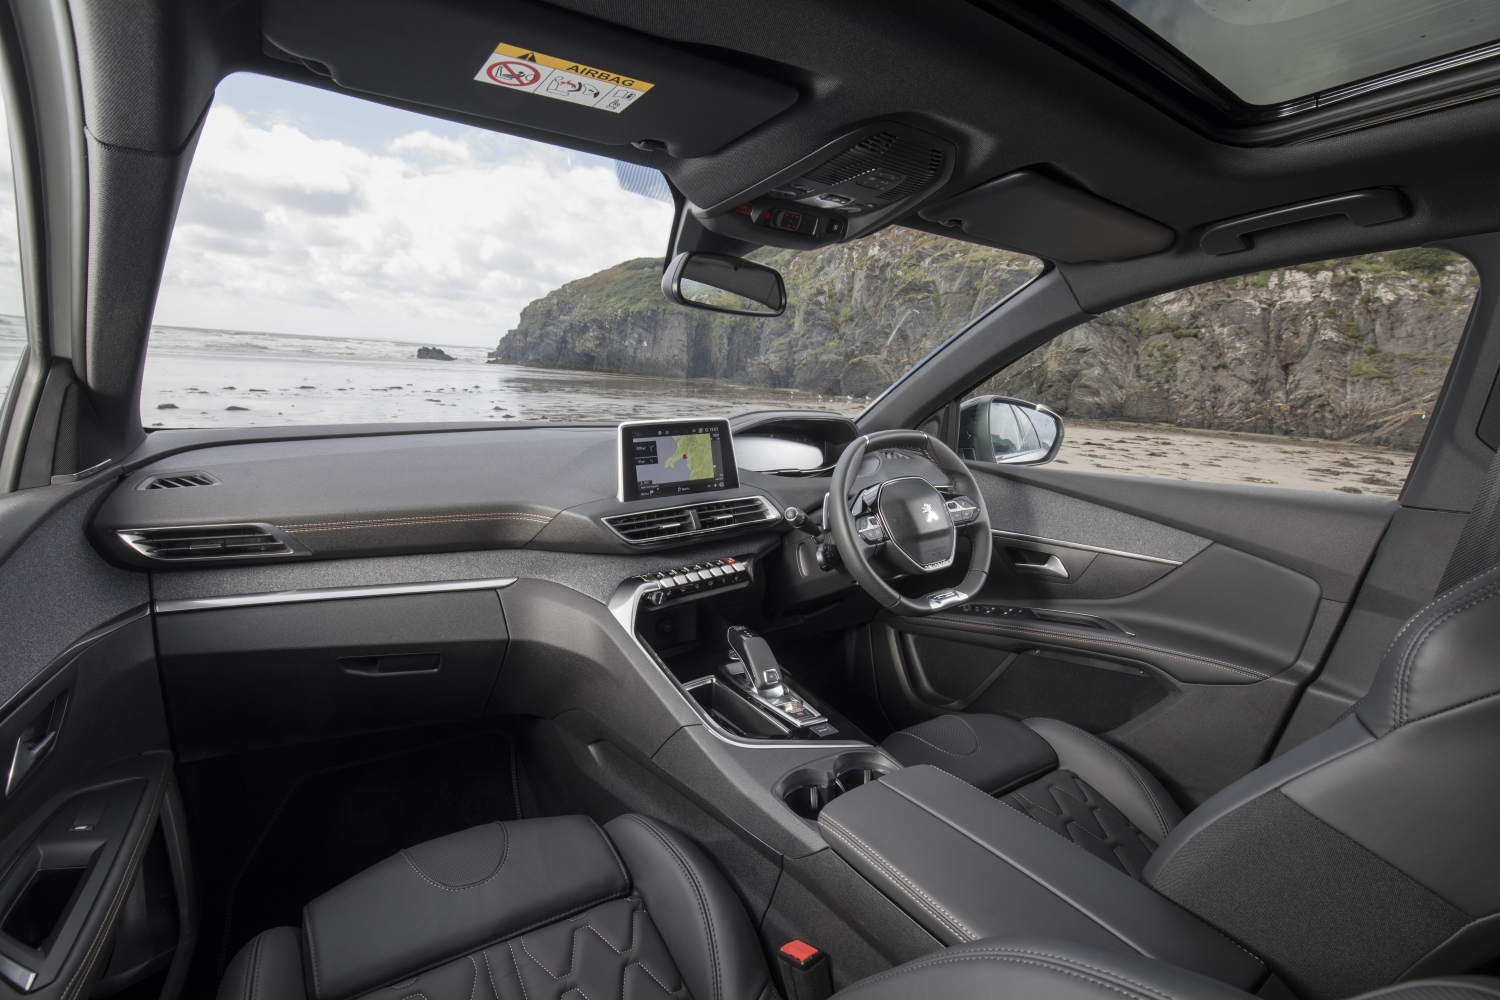 Interior of the Peugeot 5008